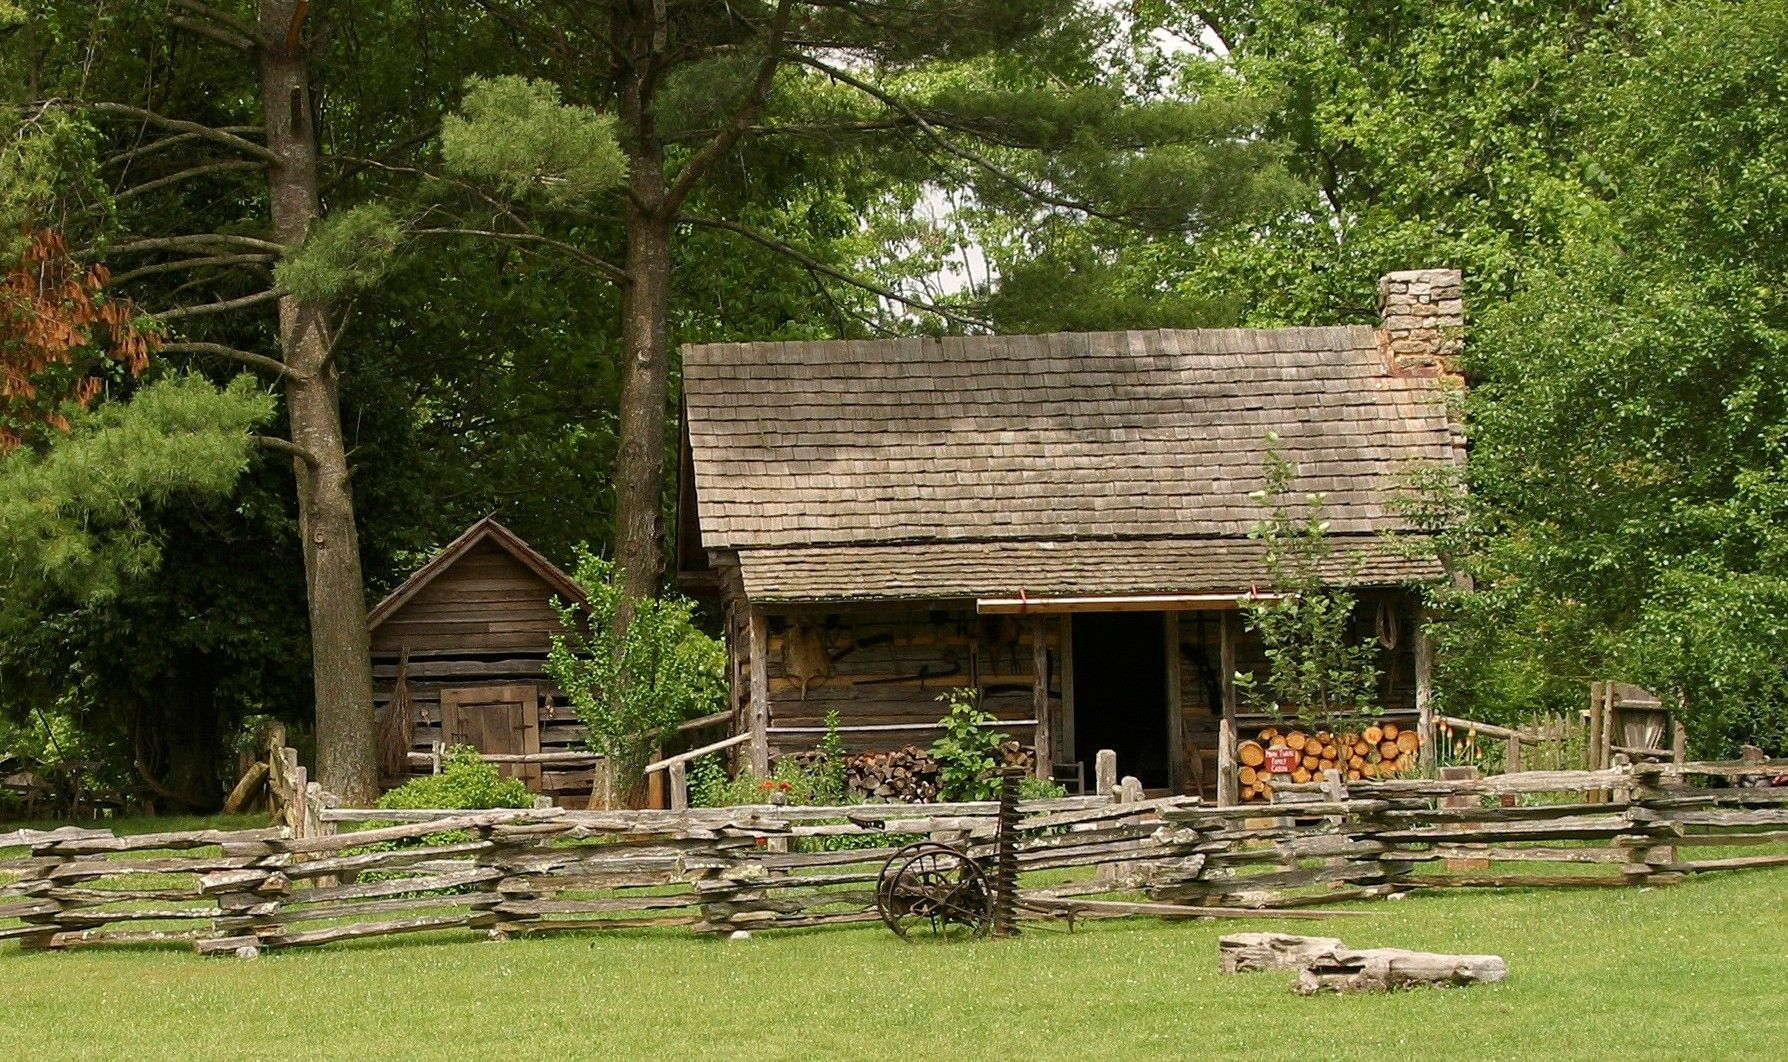 Eastern tennessee museum of appalachia 2017 vacation for Appalachian mountain cabins